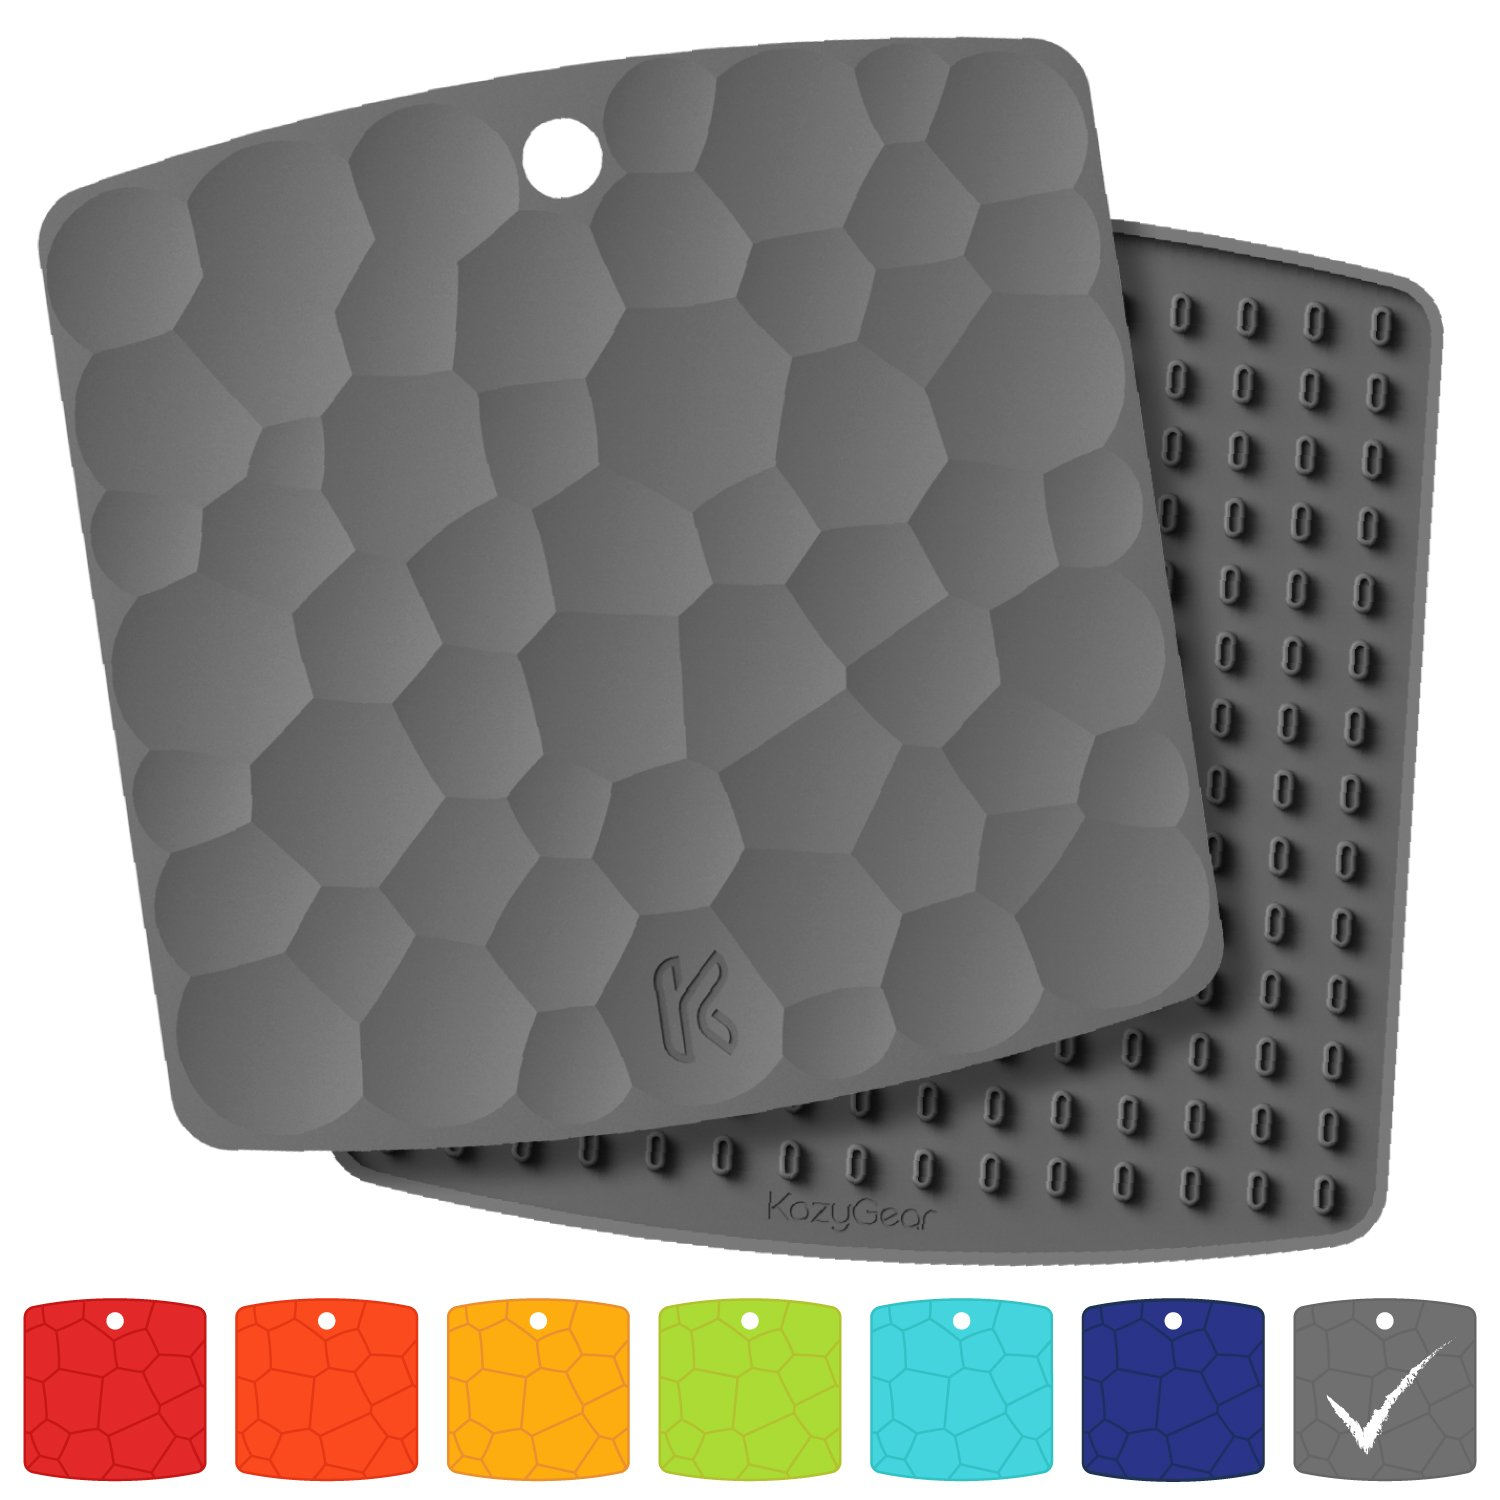 KozyGear 2 sets of 7'' x 7'' Silicone Trivet Mats, Hot Insulation Pads, Hot Pan Pot Holder, Bottle/Jar Opener, Heat Resistant To 442 °F For Oven - Non-Slip, Flexible, Waterproof [Z3 - Series] (GREY) by KozyGear